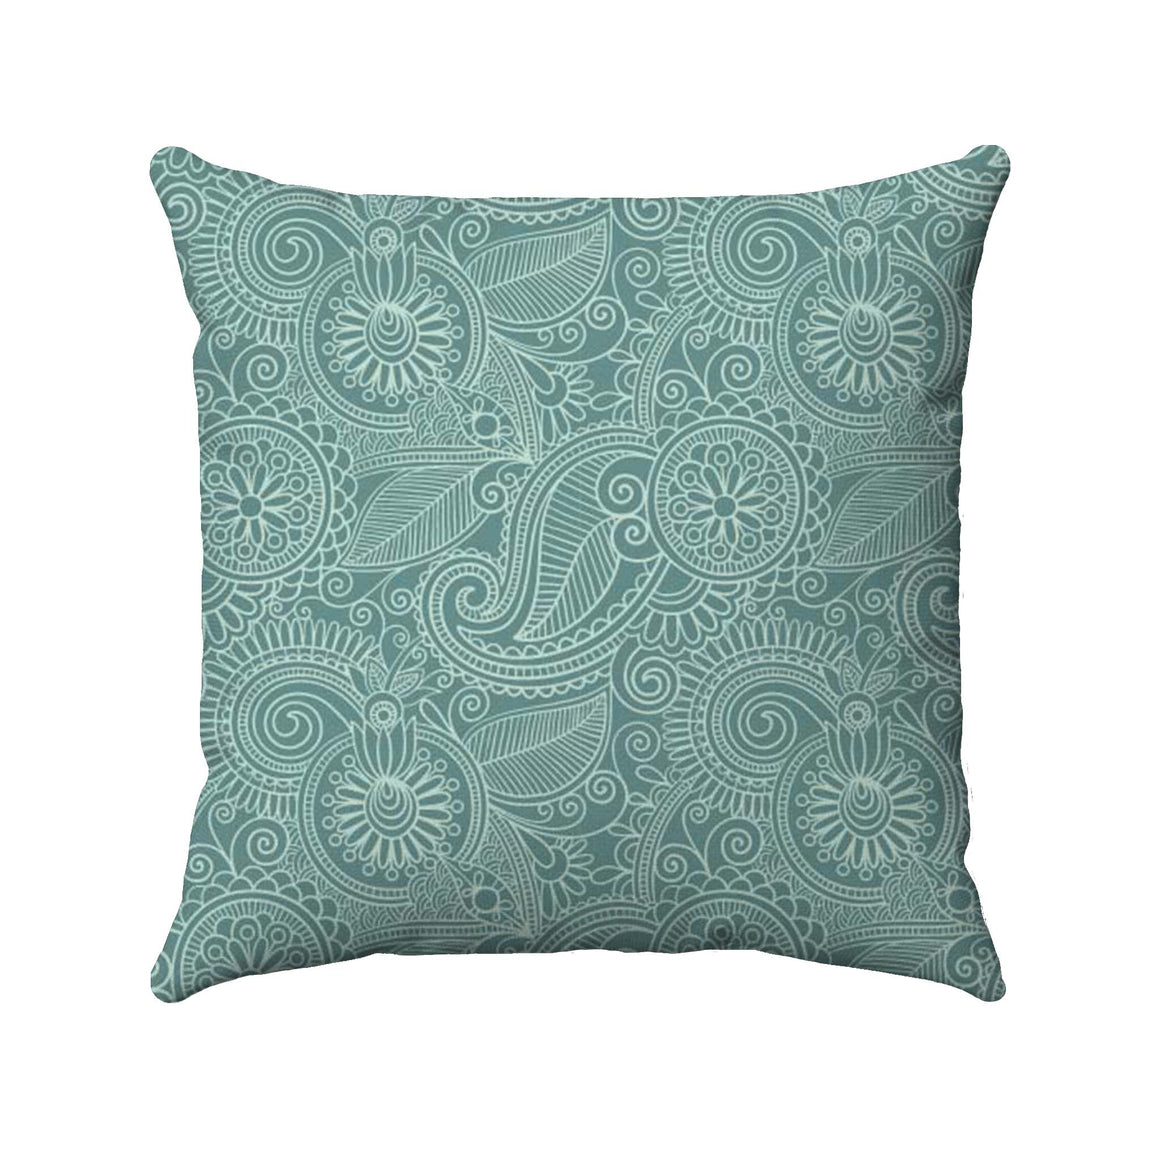 Paisley design with a sea foam color detailed on a teal background